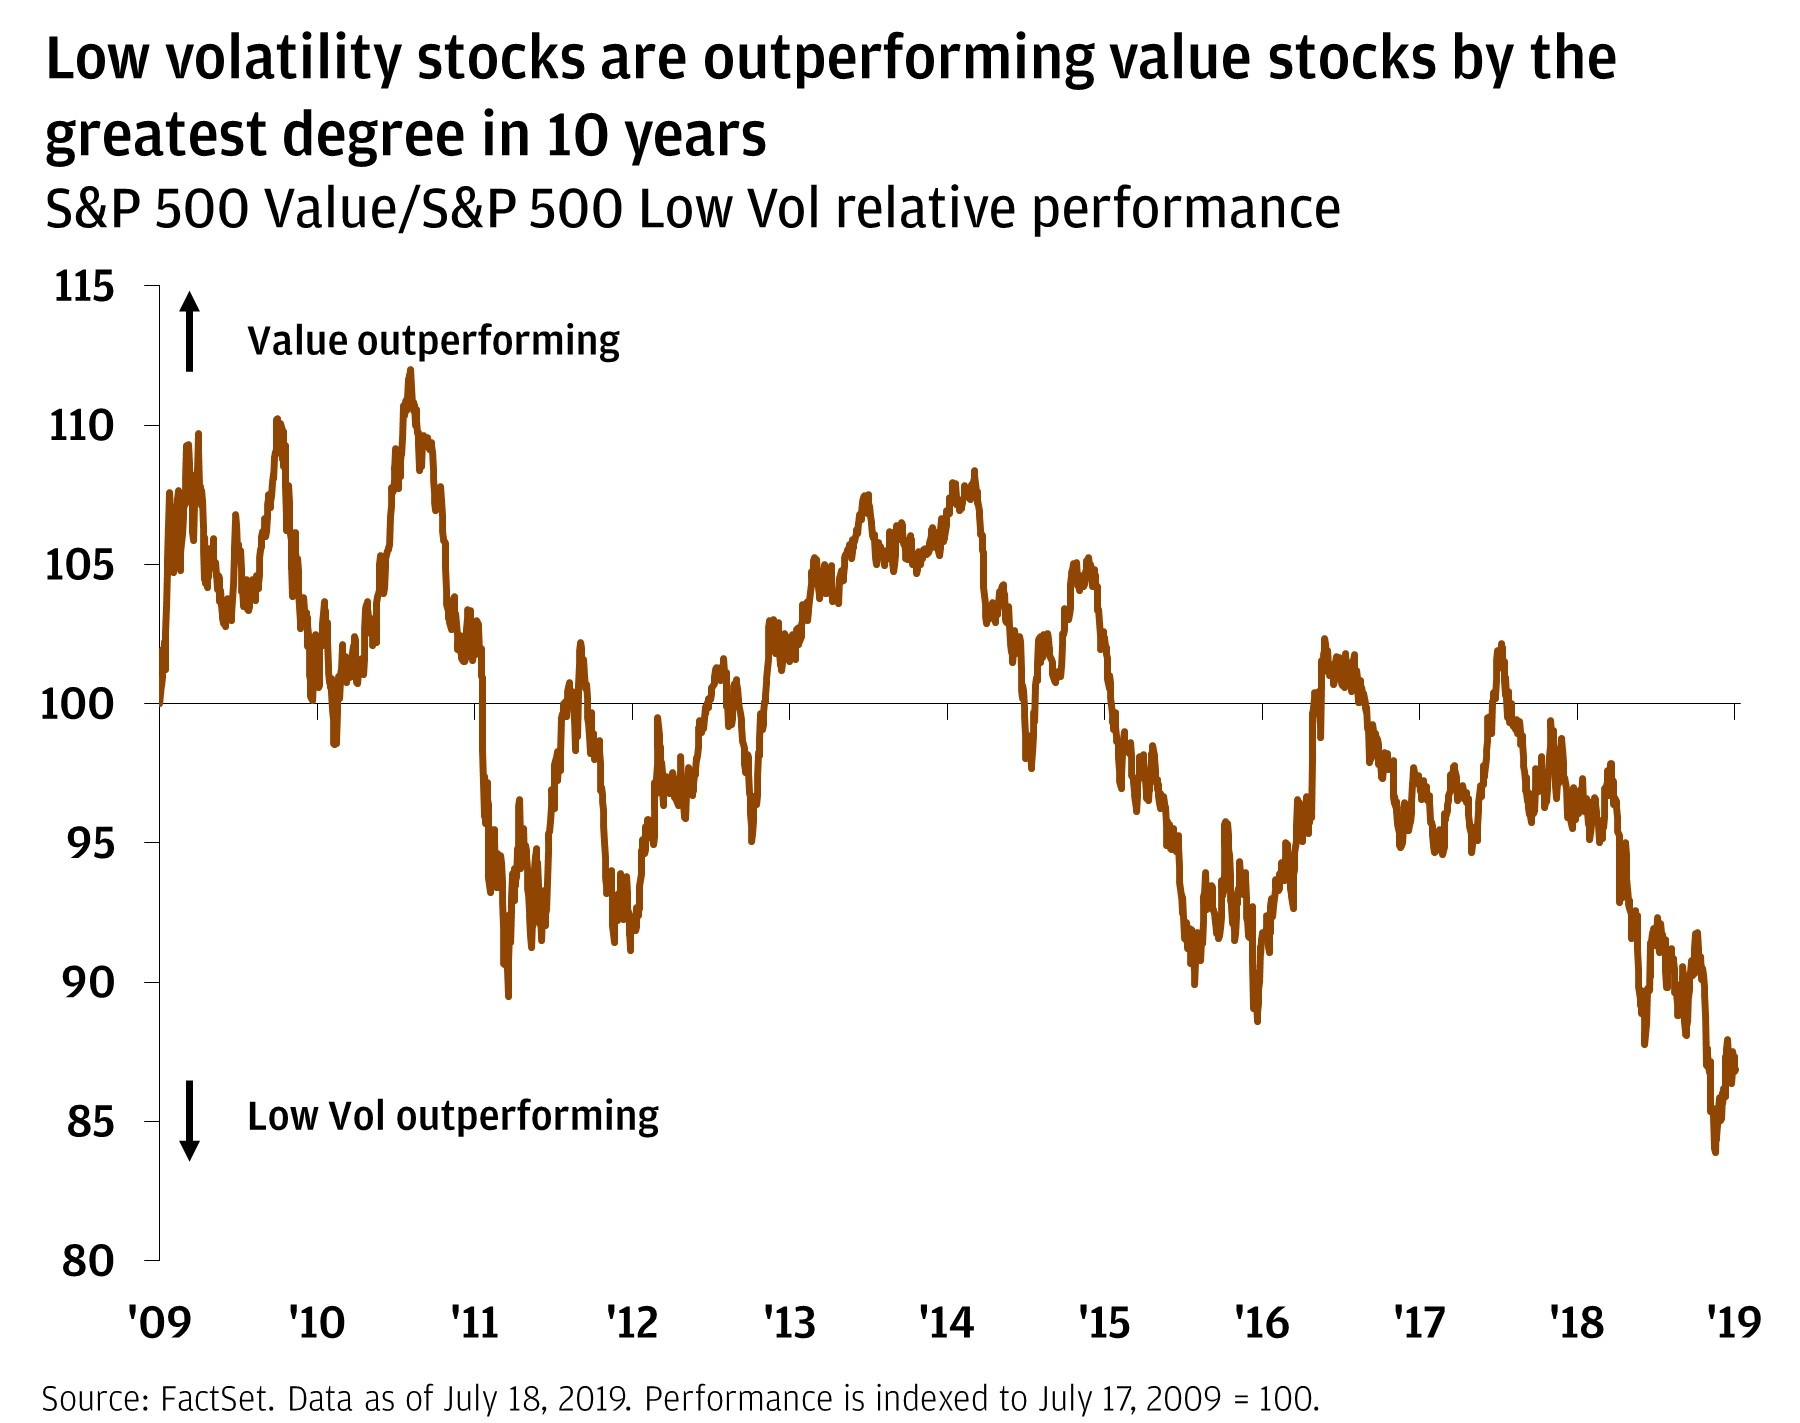 Low volatility stocks are outperforming value stocks by the greatest degree in 10 years Single line chart showing the relative performance of the S&P 500 Value Index vs. S&P 500 Low Vol Index. Since the start of 2018, Low Vol has been consistently outperforming the Value Index, not outperforming to the greatest relative degree in the past 10 years.